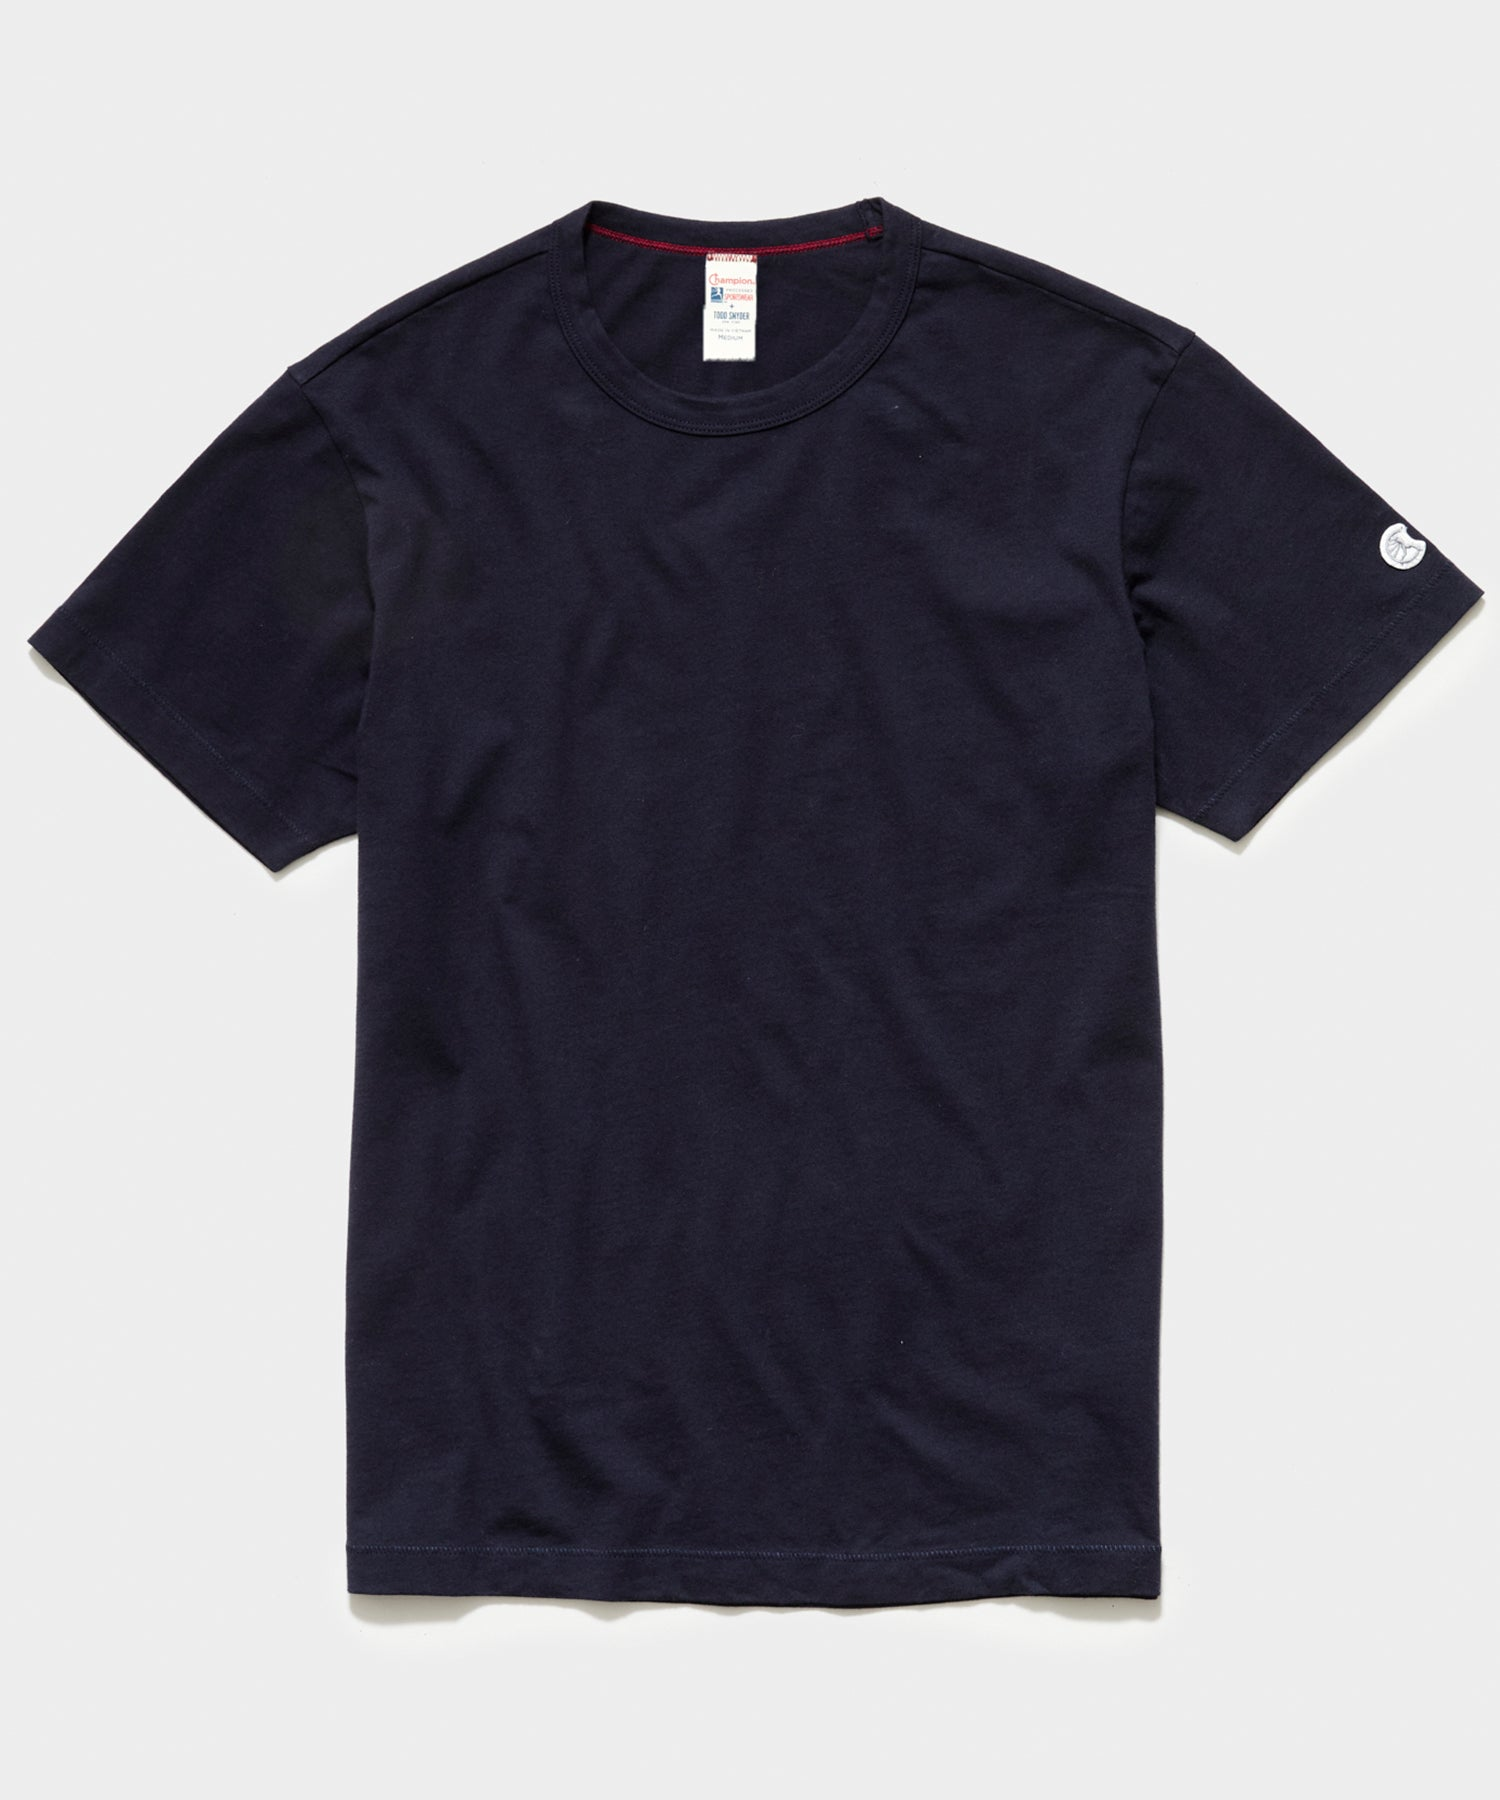 Champion Basic Jersey Tee in Original Navy